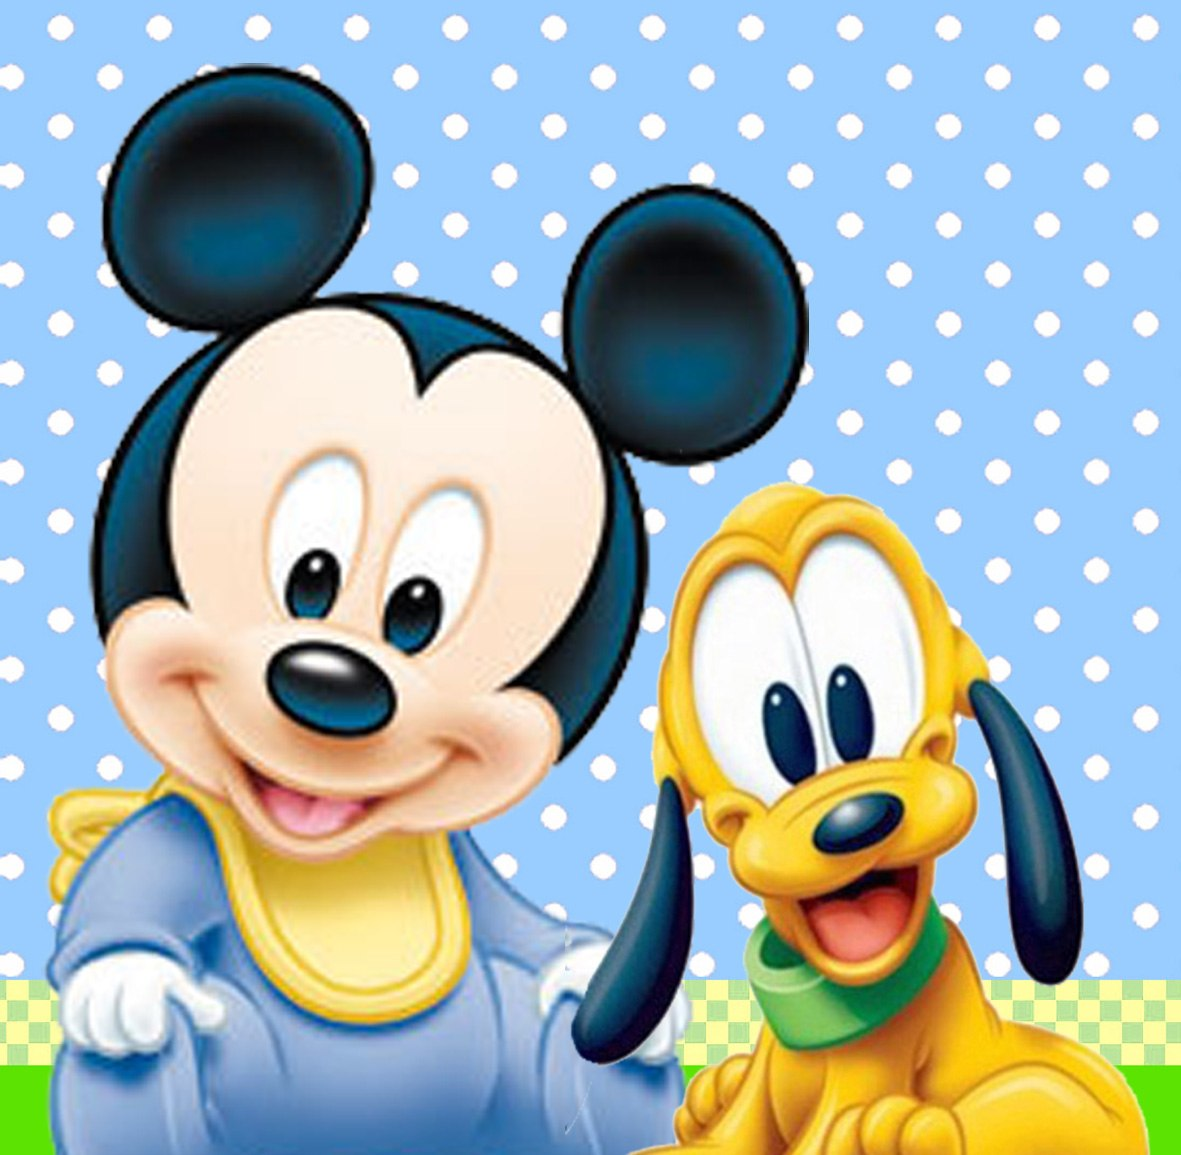 Mickey mouse and pluto...